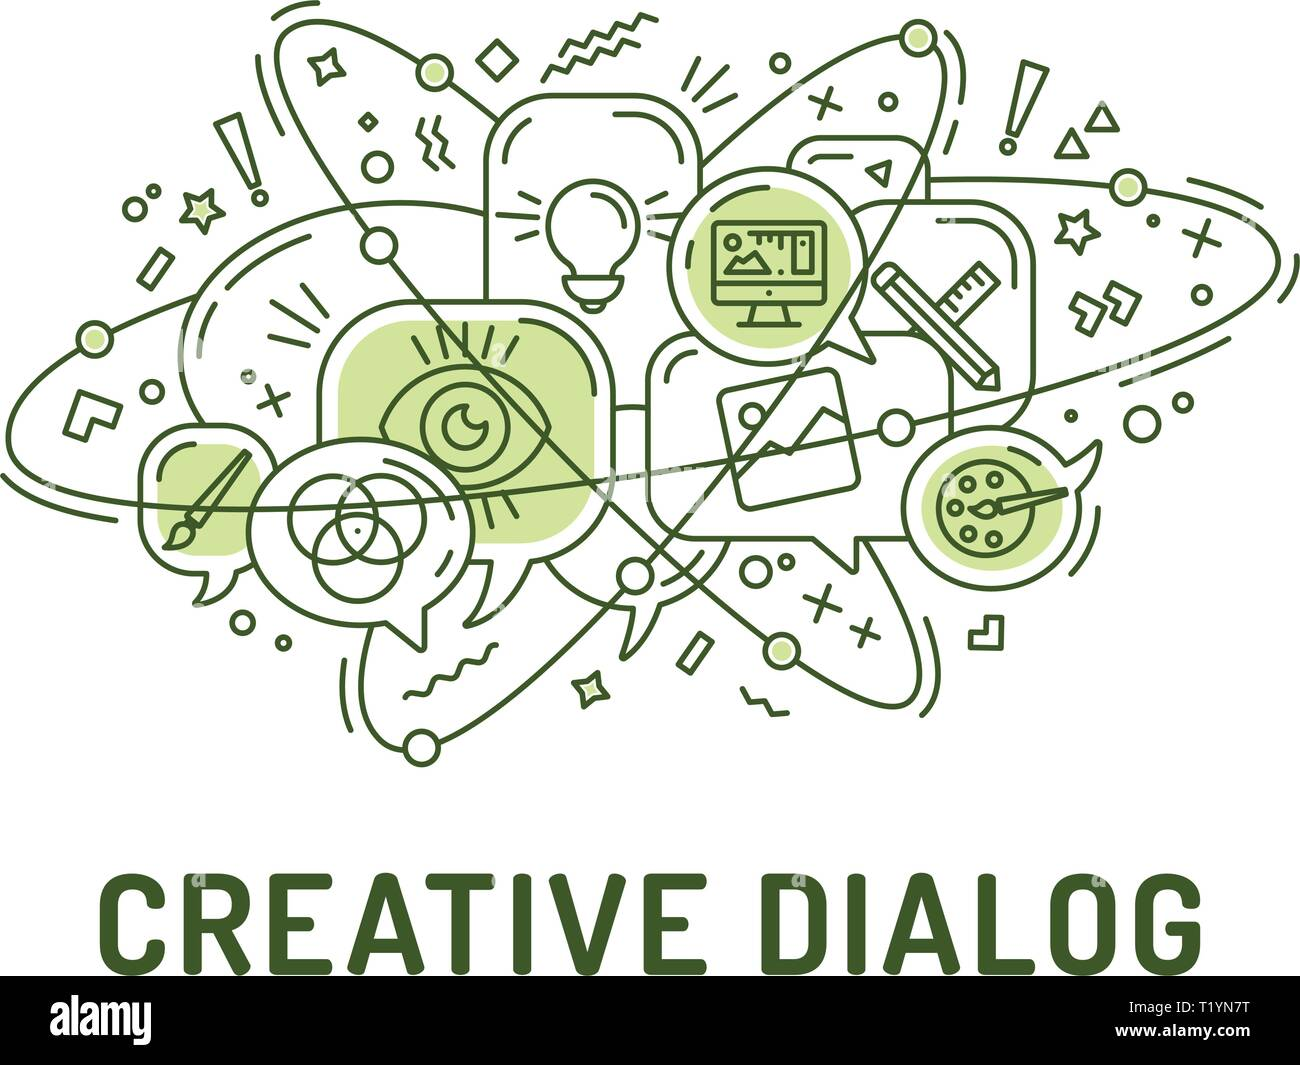 Illustration from creativity art design icons in chat bubbles with three orbital ovals - Stock Image